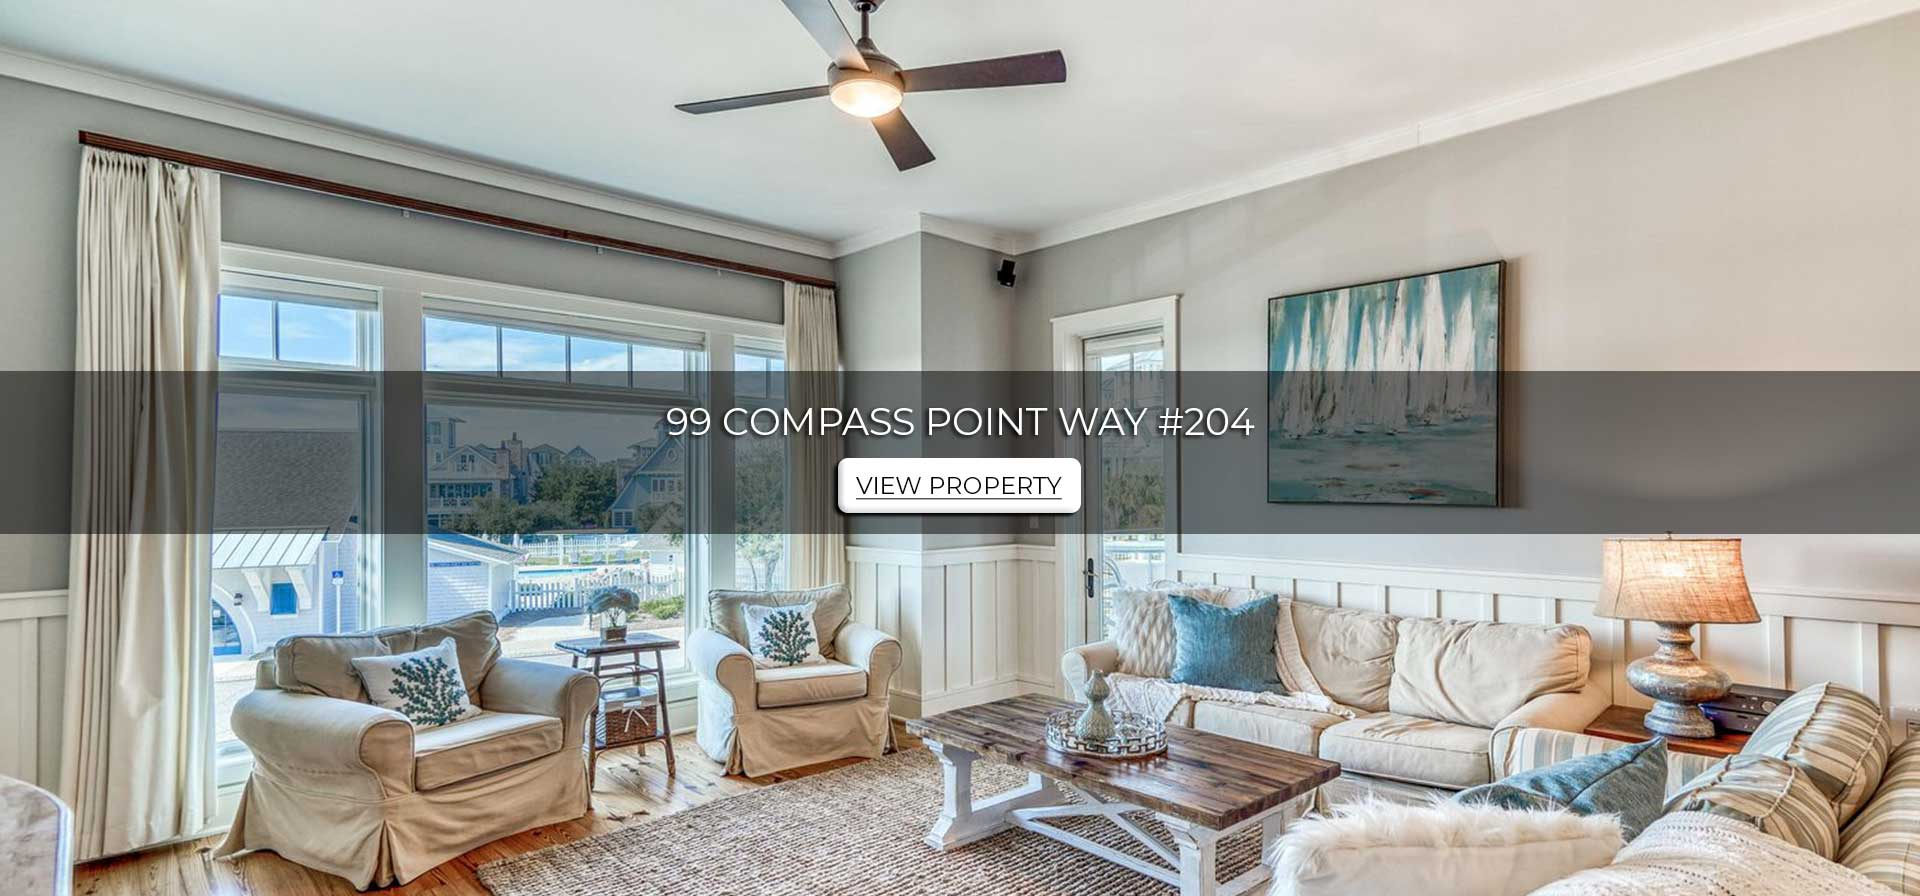 99 Compass Point Way 204 Watersound FL 32461